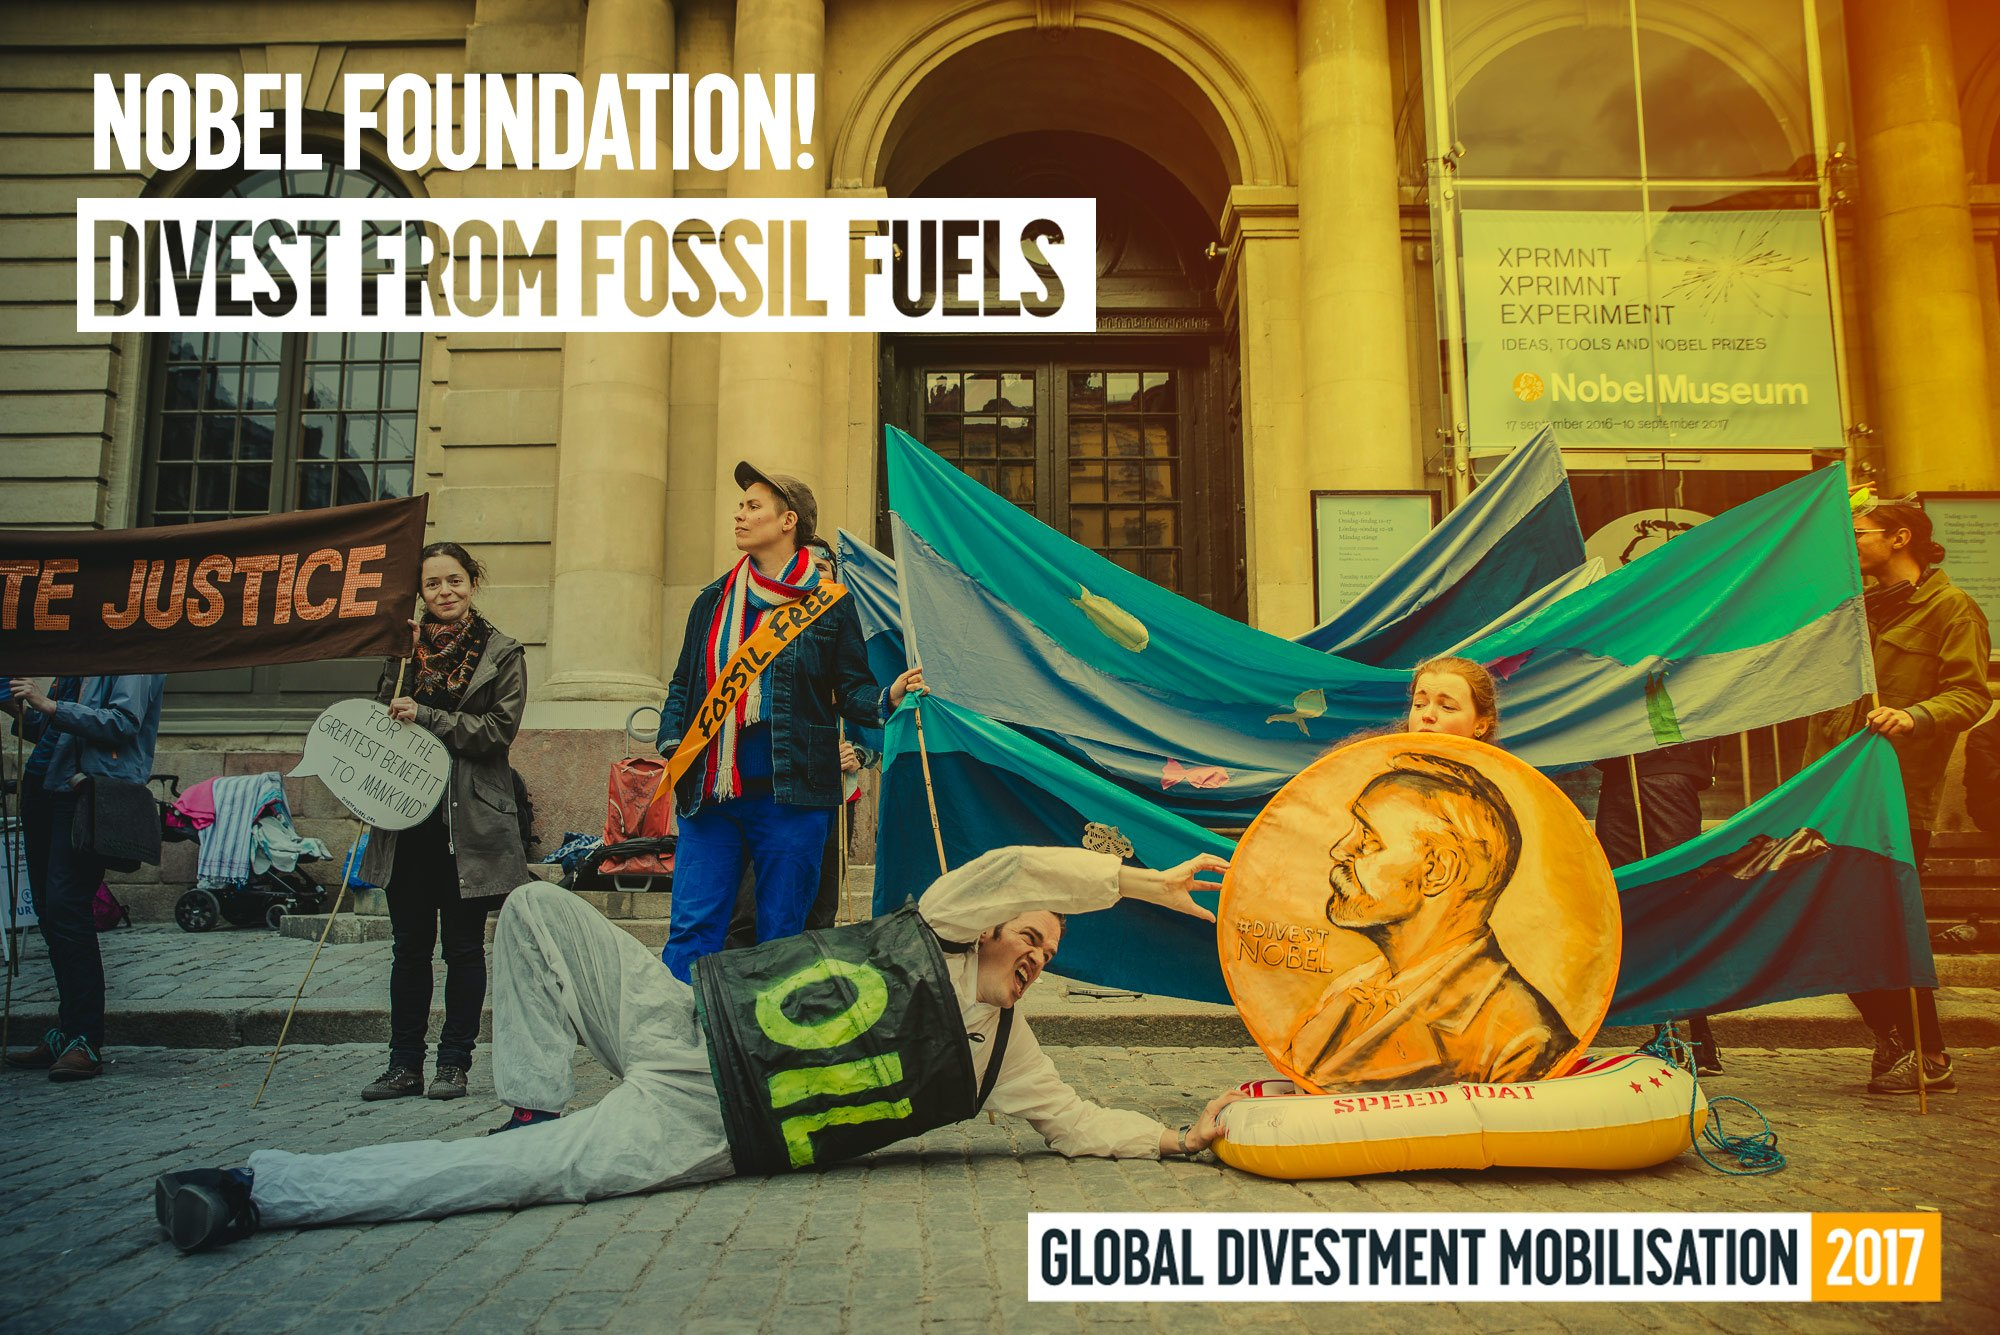 No flooding - no fossil investments! We need action to keep the poor Nobel Prize medal afloat #fossilfree #divestera https://t.co/z6KLq1TAJH https://t.co/4vhqFAtMHx